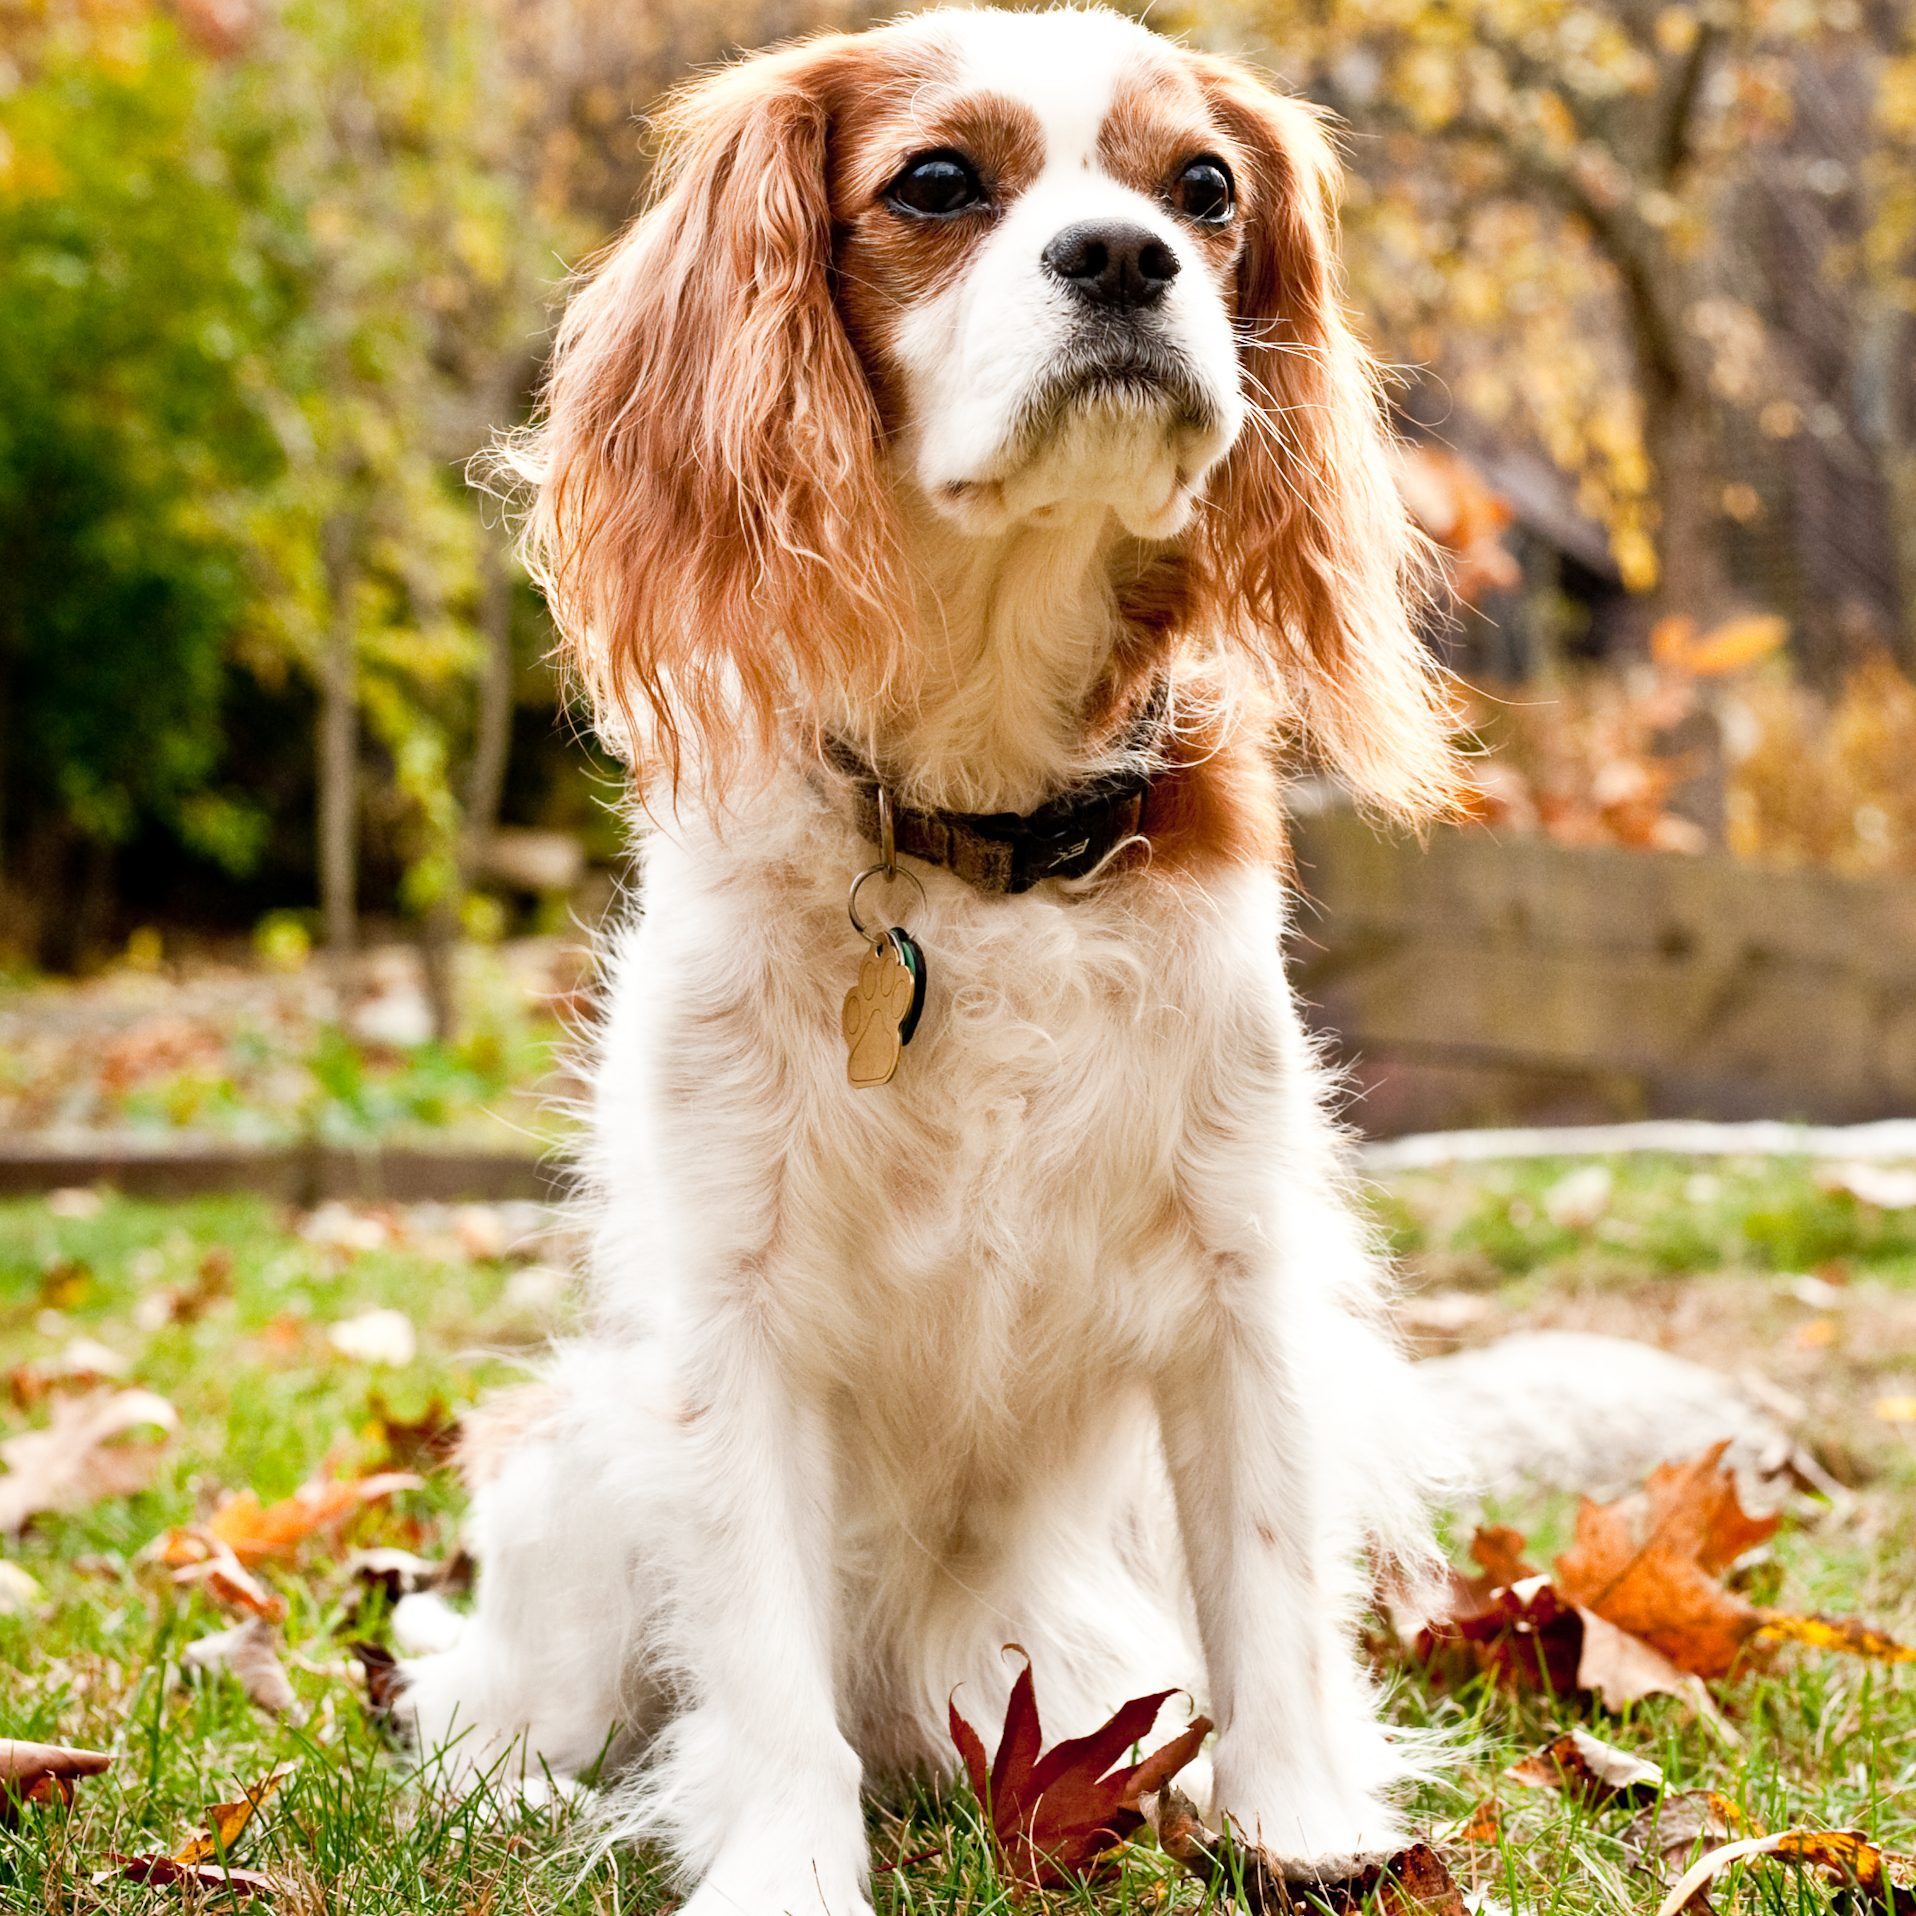 A Cavalier King Charles Spaniel sitting outside in the leaves